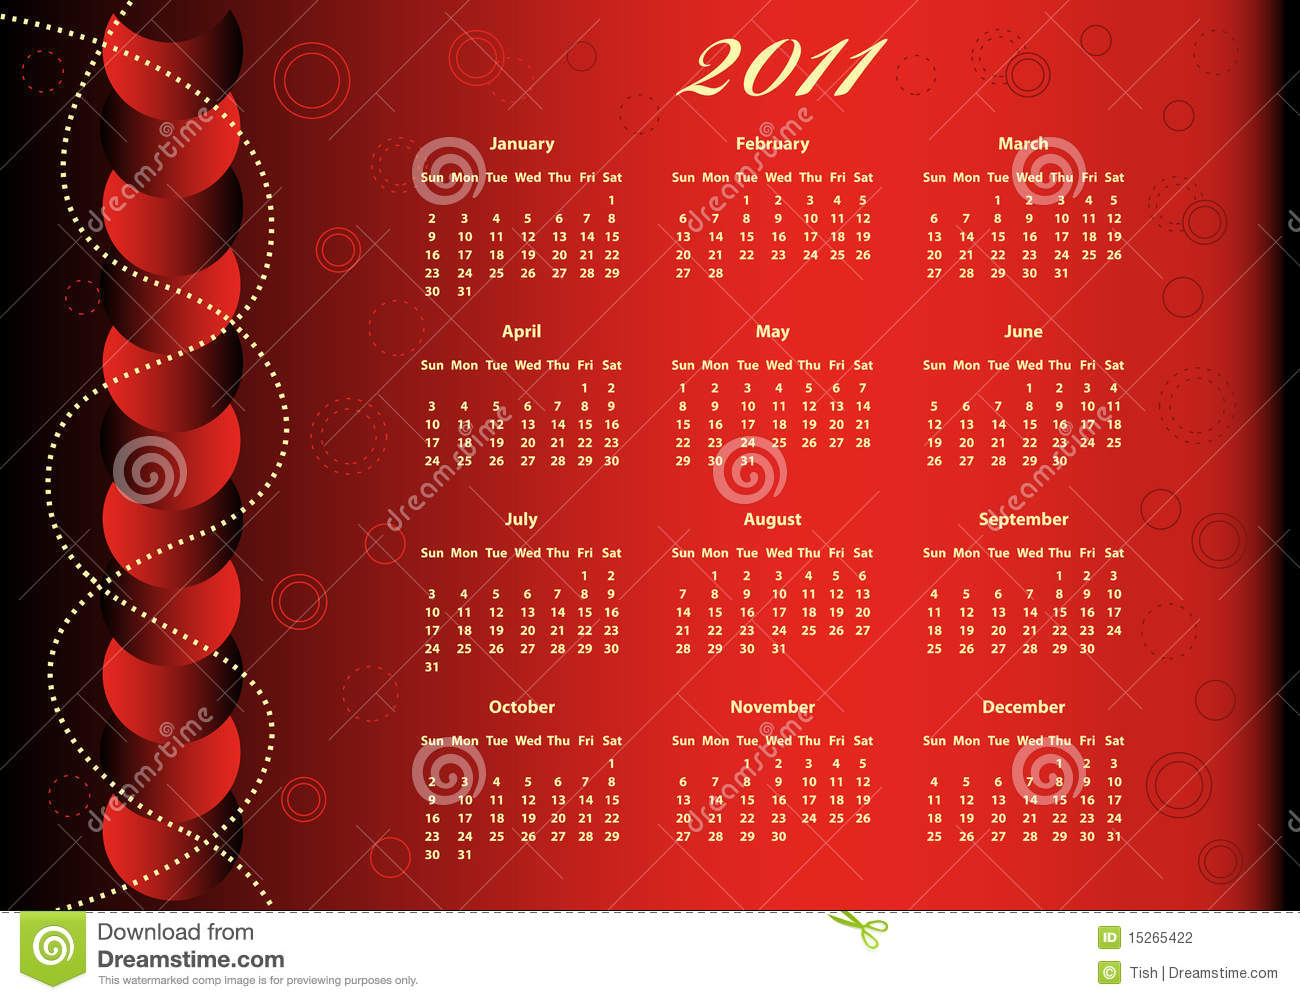 2011 Calendar Full Year Stock Photography - Image: 15265422